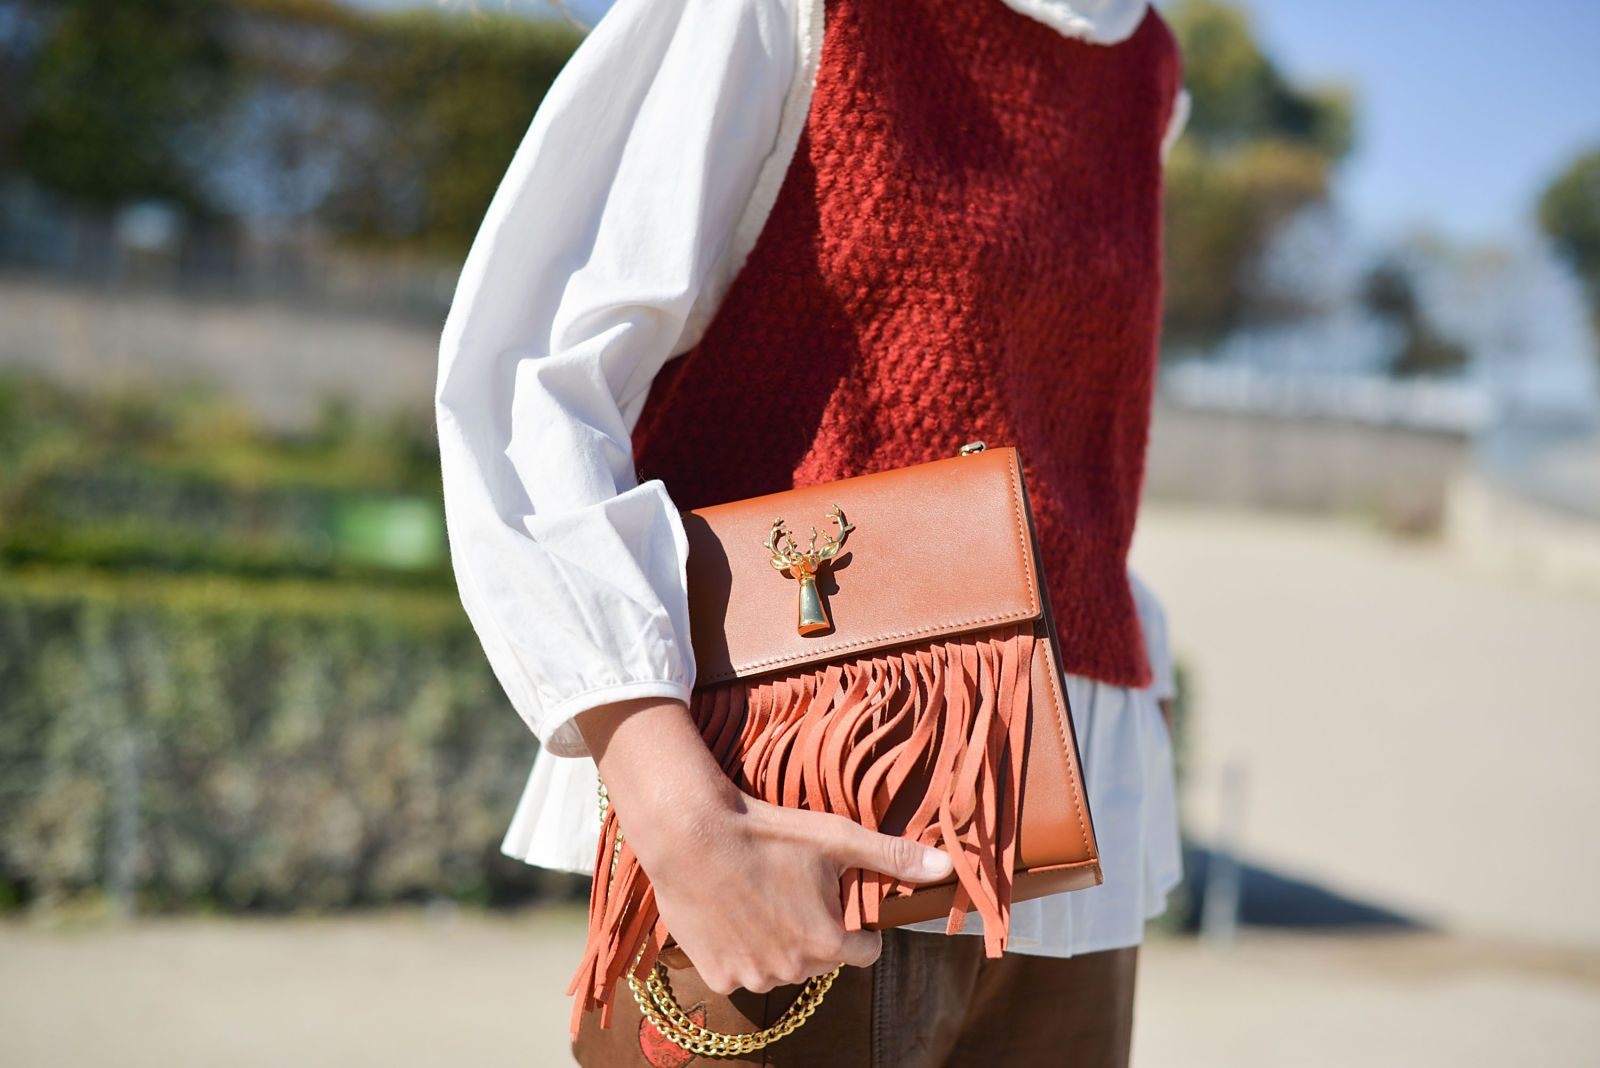 5 Non-Basic Outfits for Basic Fall Activities  - ELLE.com